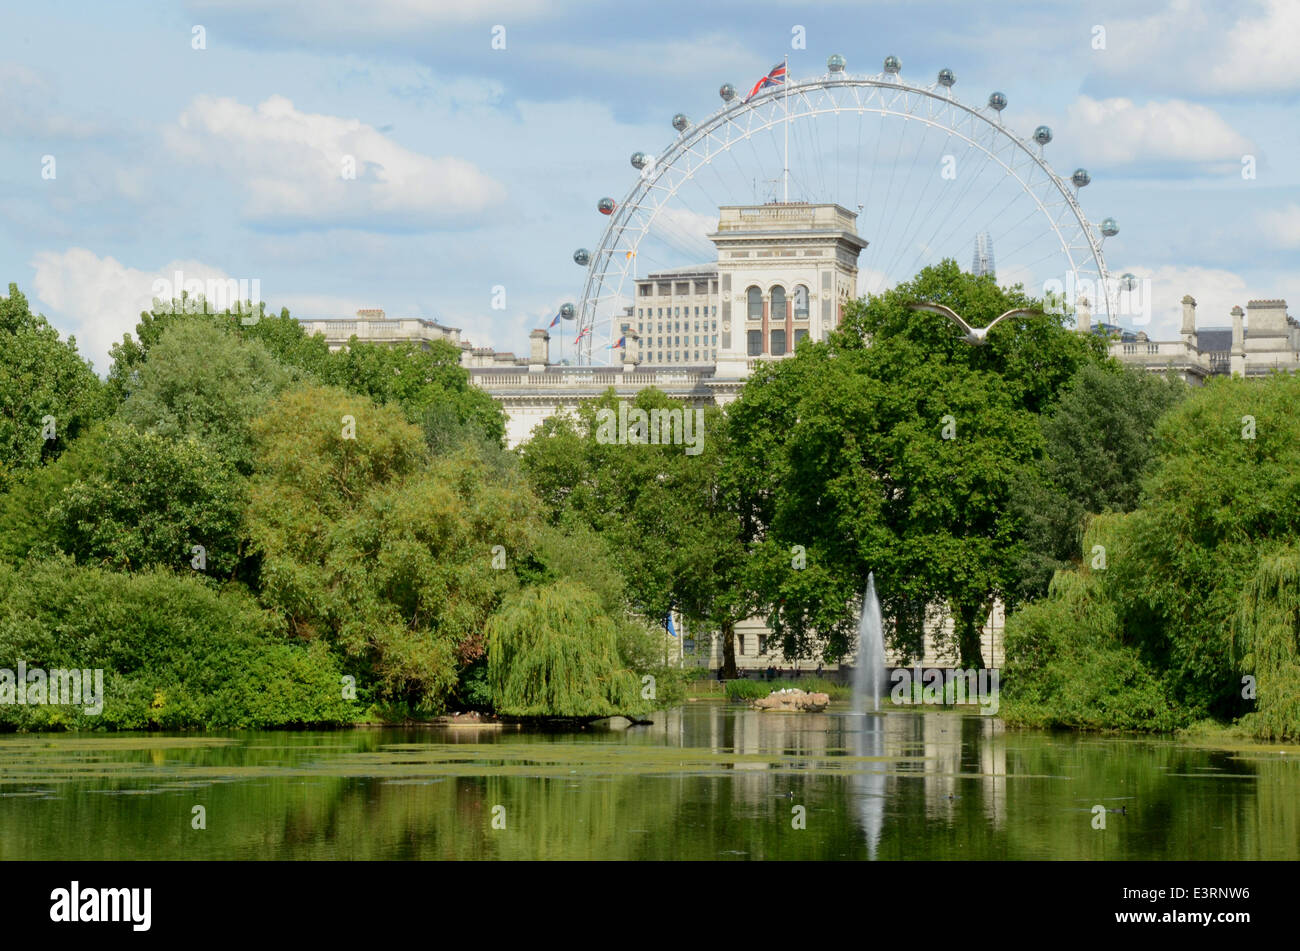 St James Park, The mall, London, UK - Stock Image